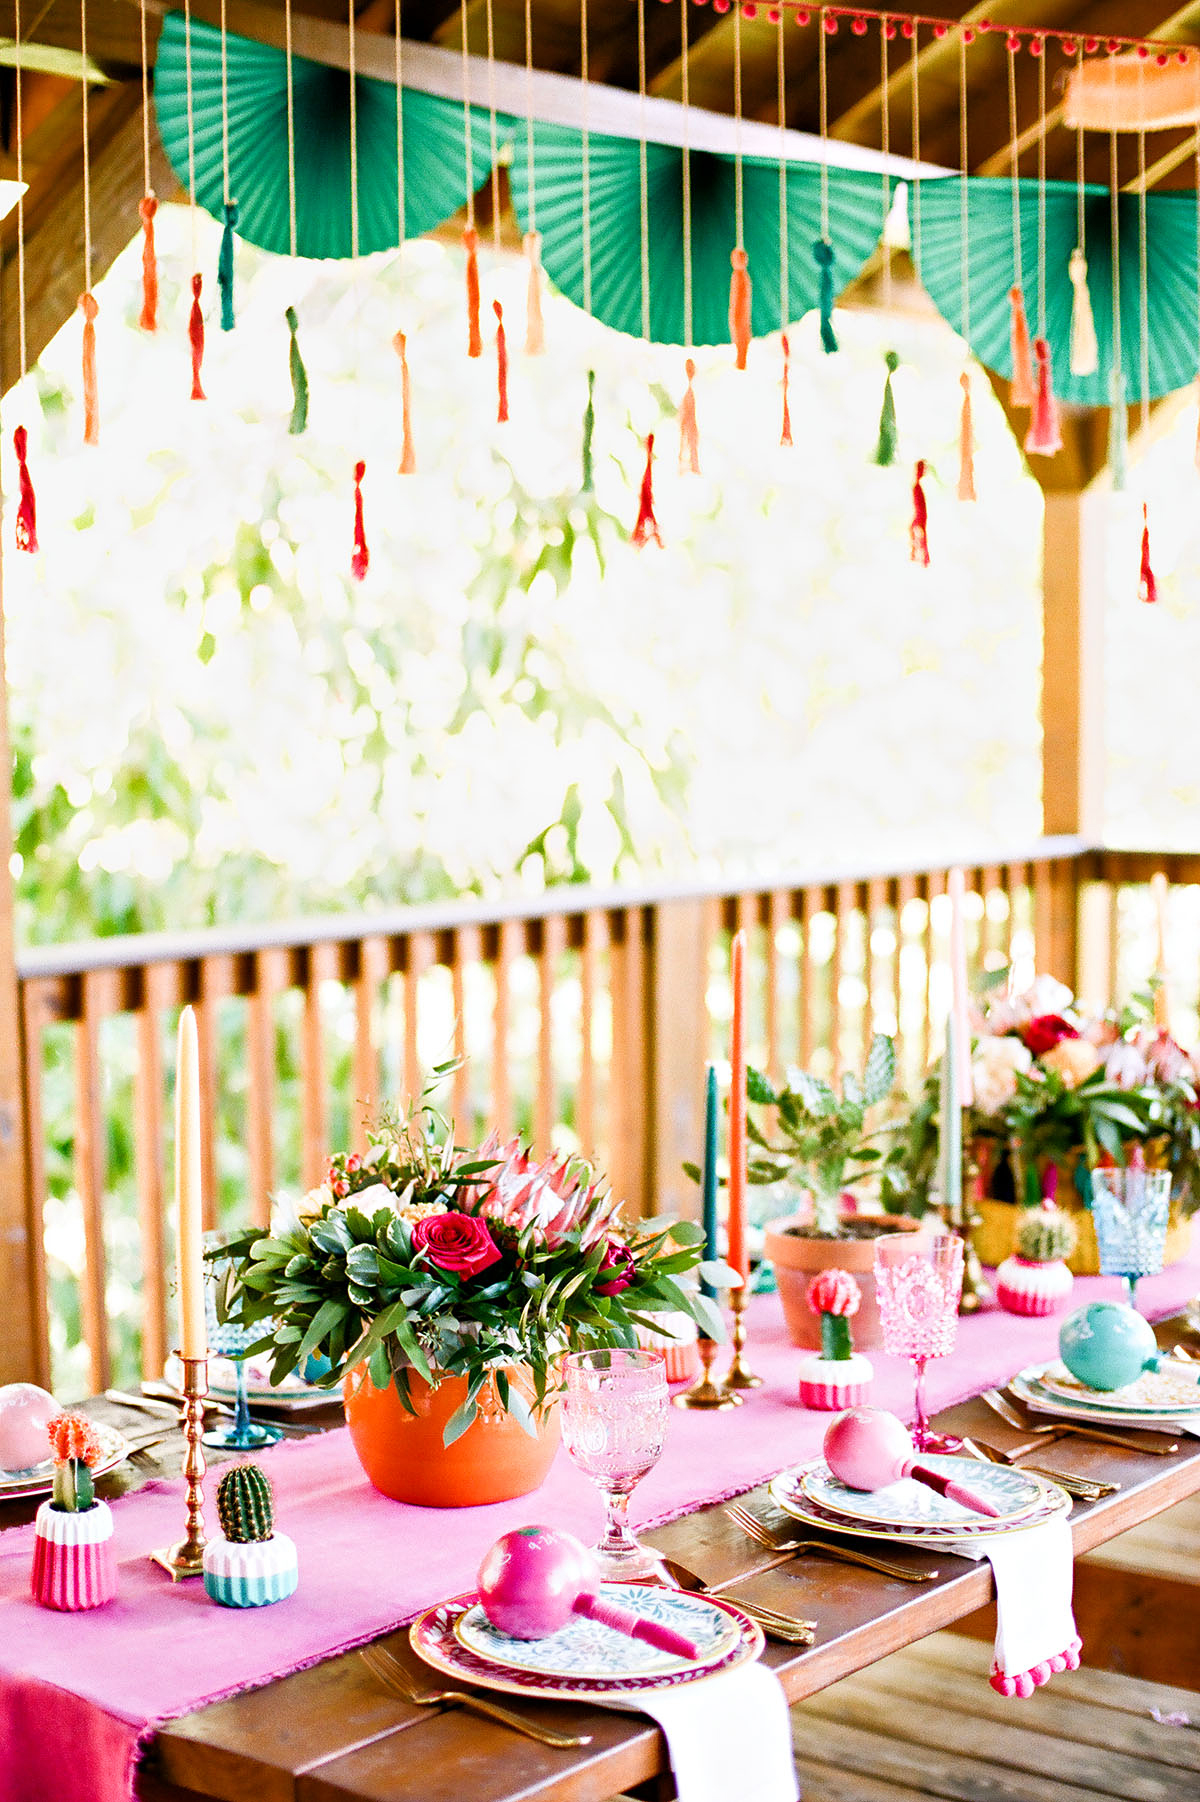 4 Unique Engagement Party Theme Ideas Your Guests Haven't Seen Before